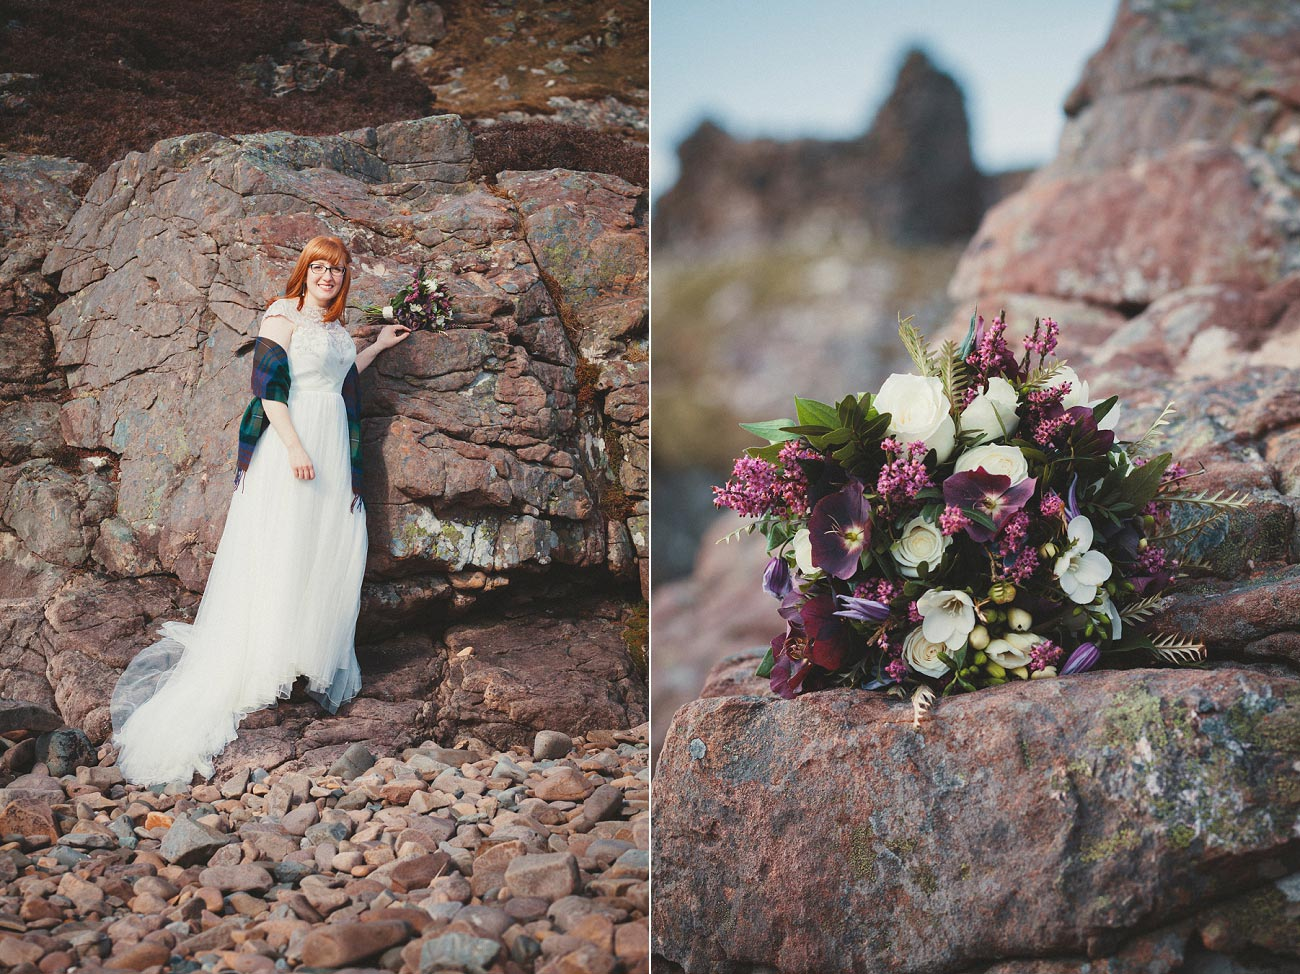 isle of skye elopement wedding photographer scotland dunscaith castle rj 0028